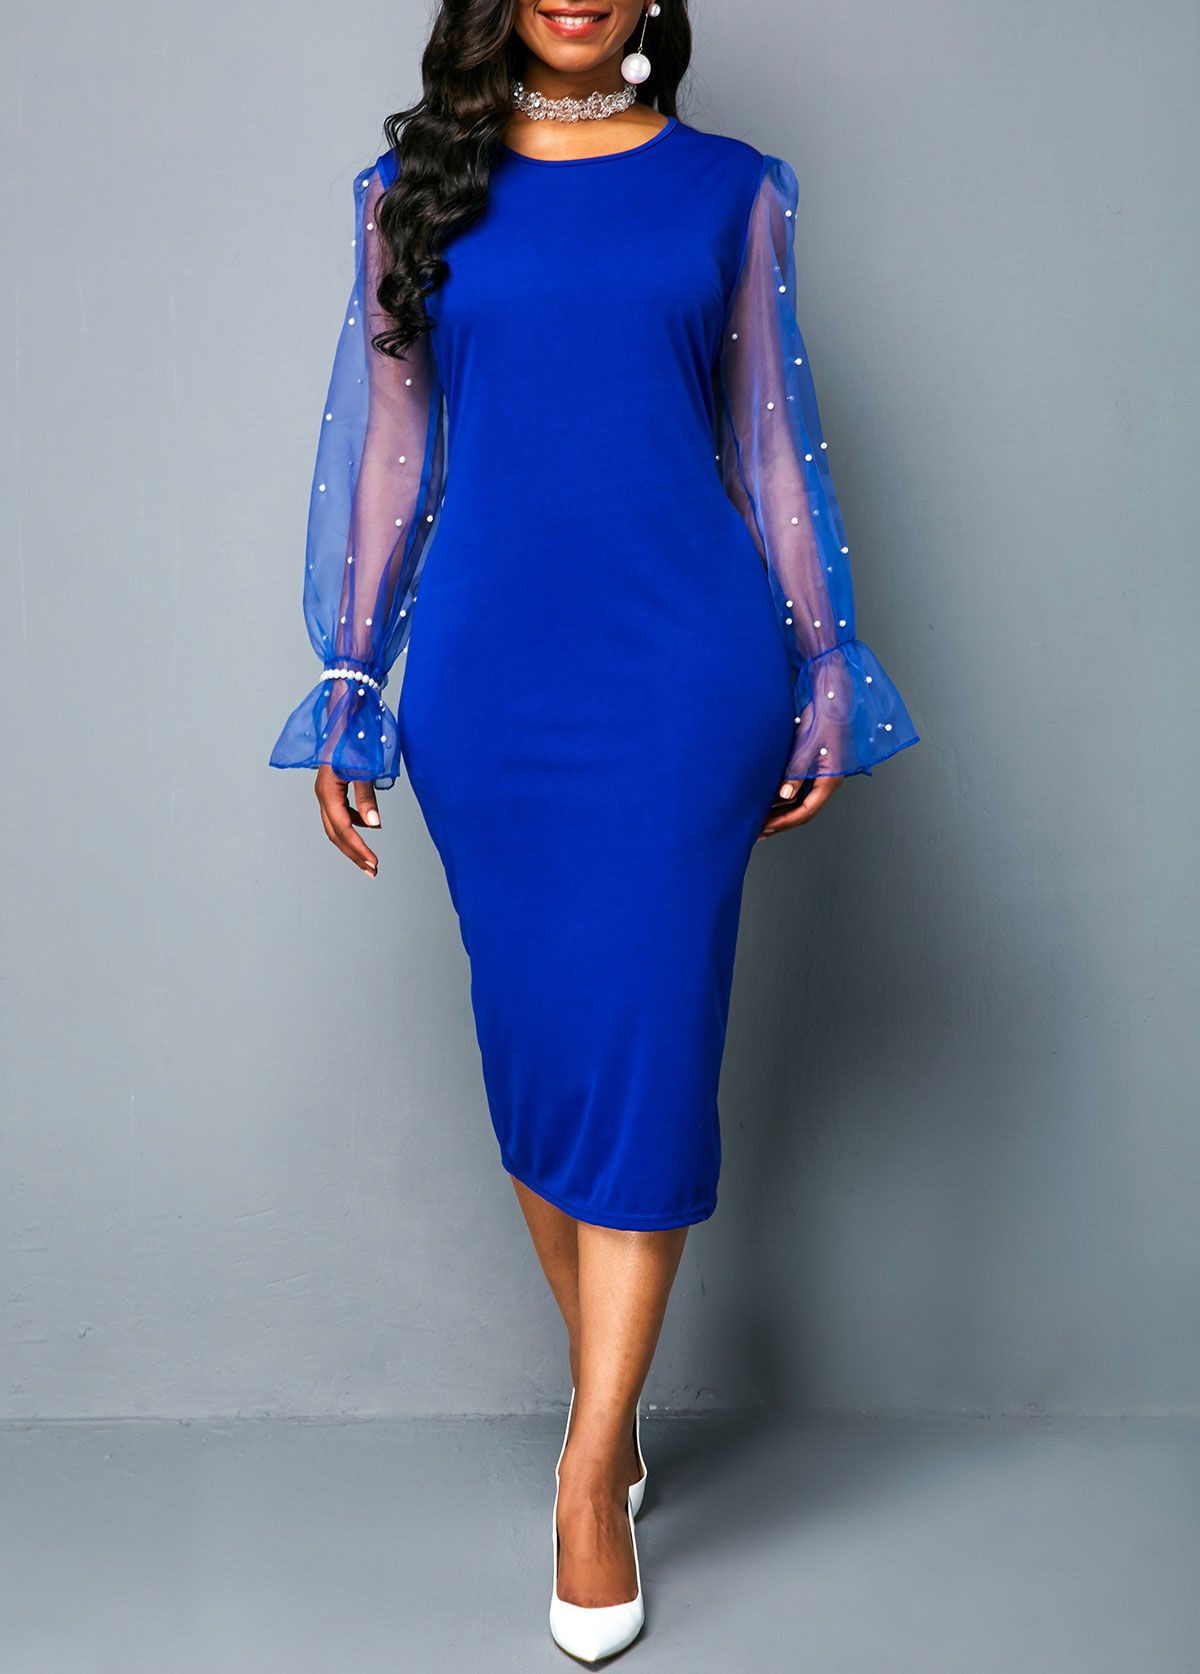 Royal Blue Long Sleeve Dress Outfit Ideas